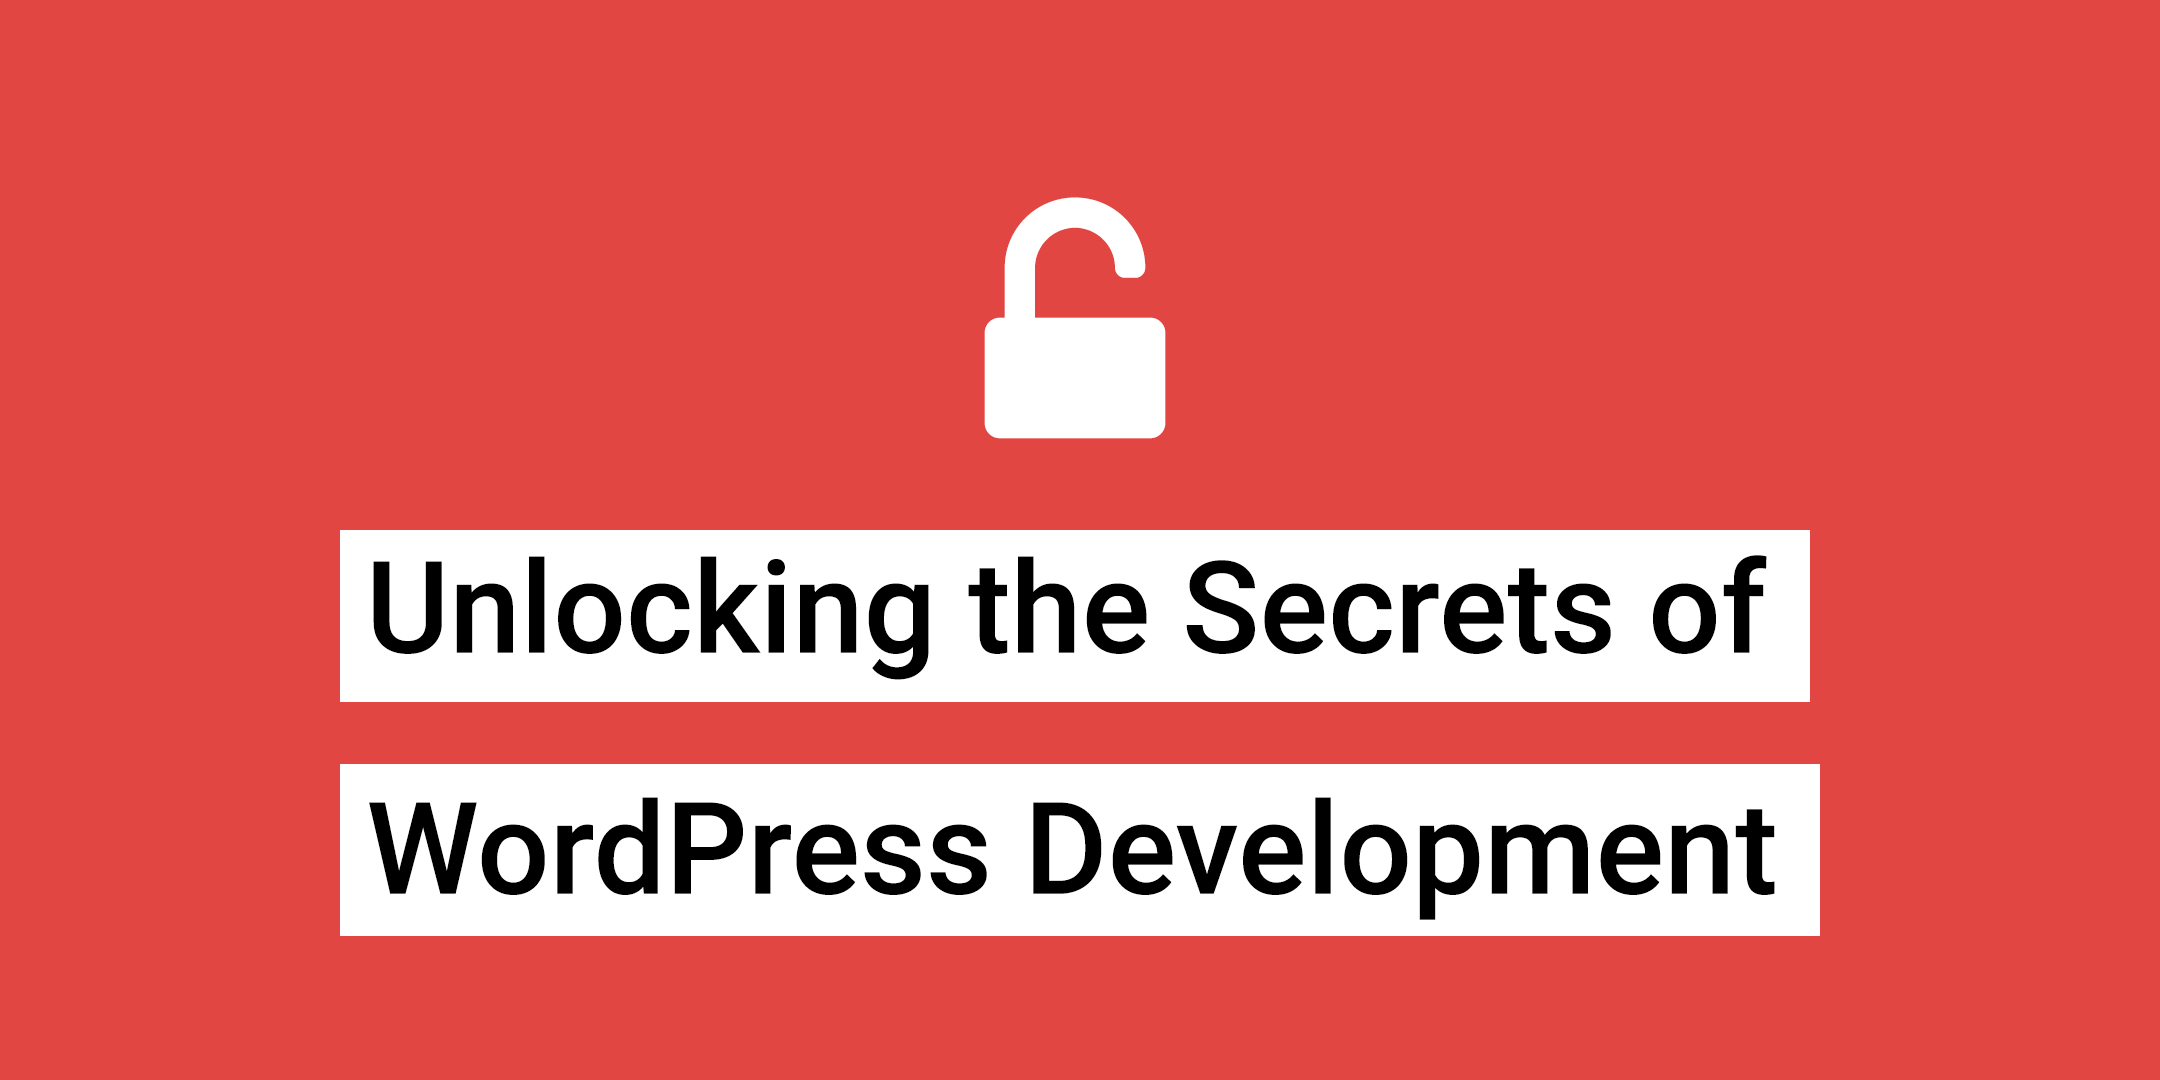 Unlocking the Secrets of WordPress Development